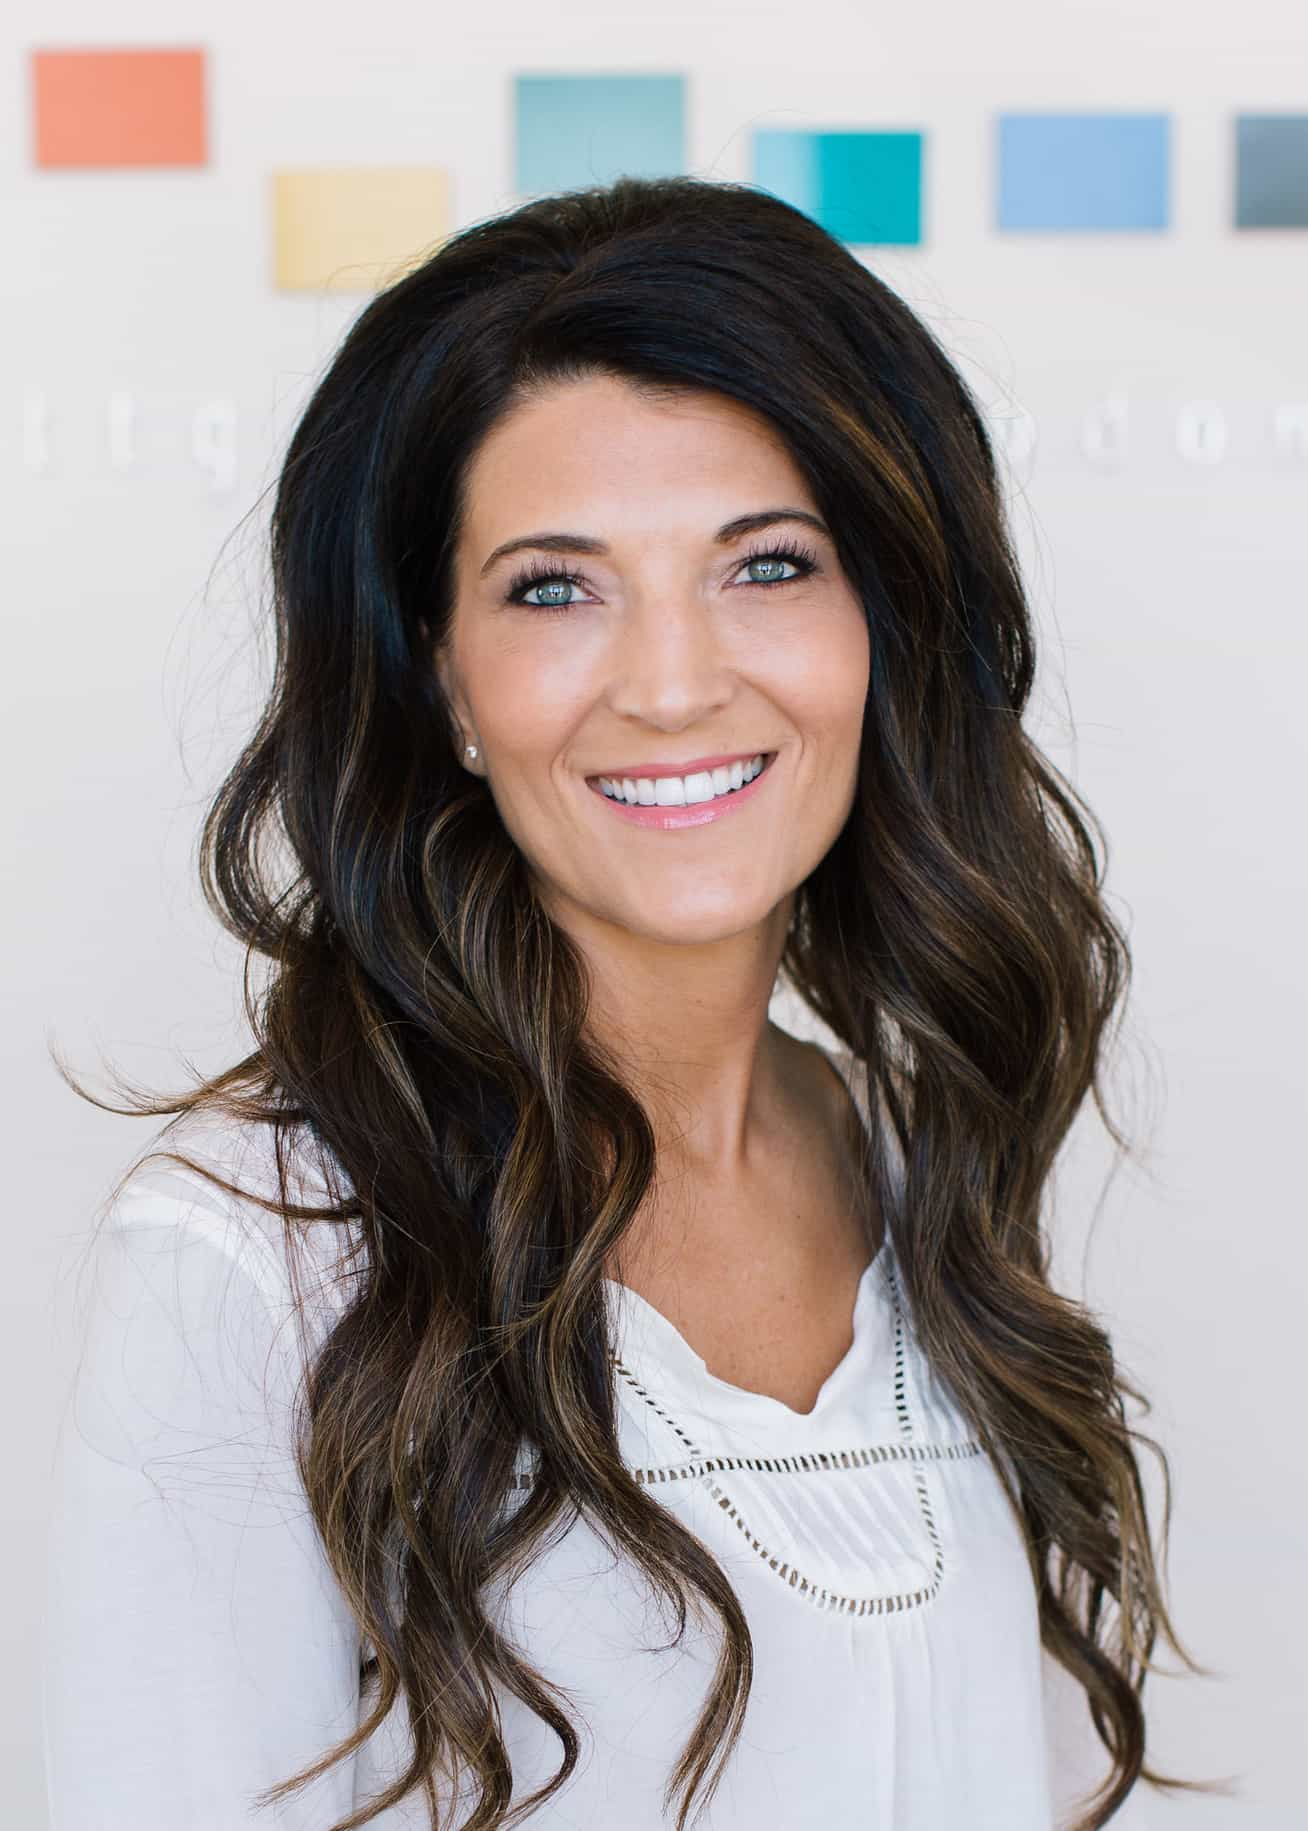 2. Stacey